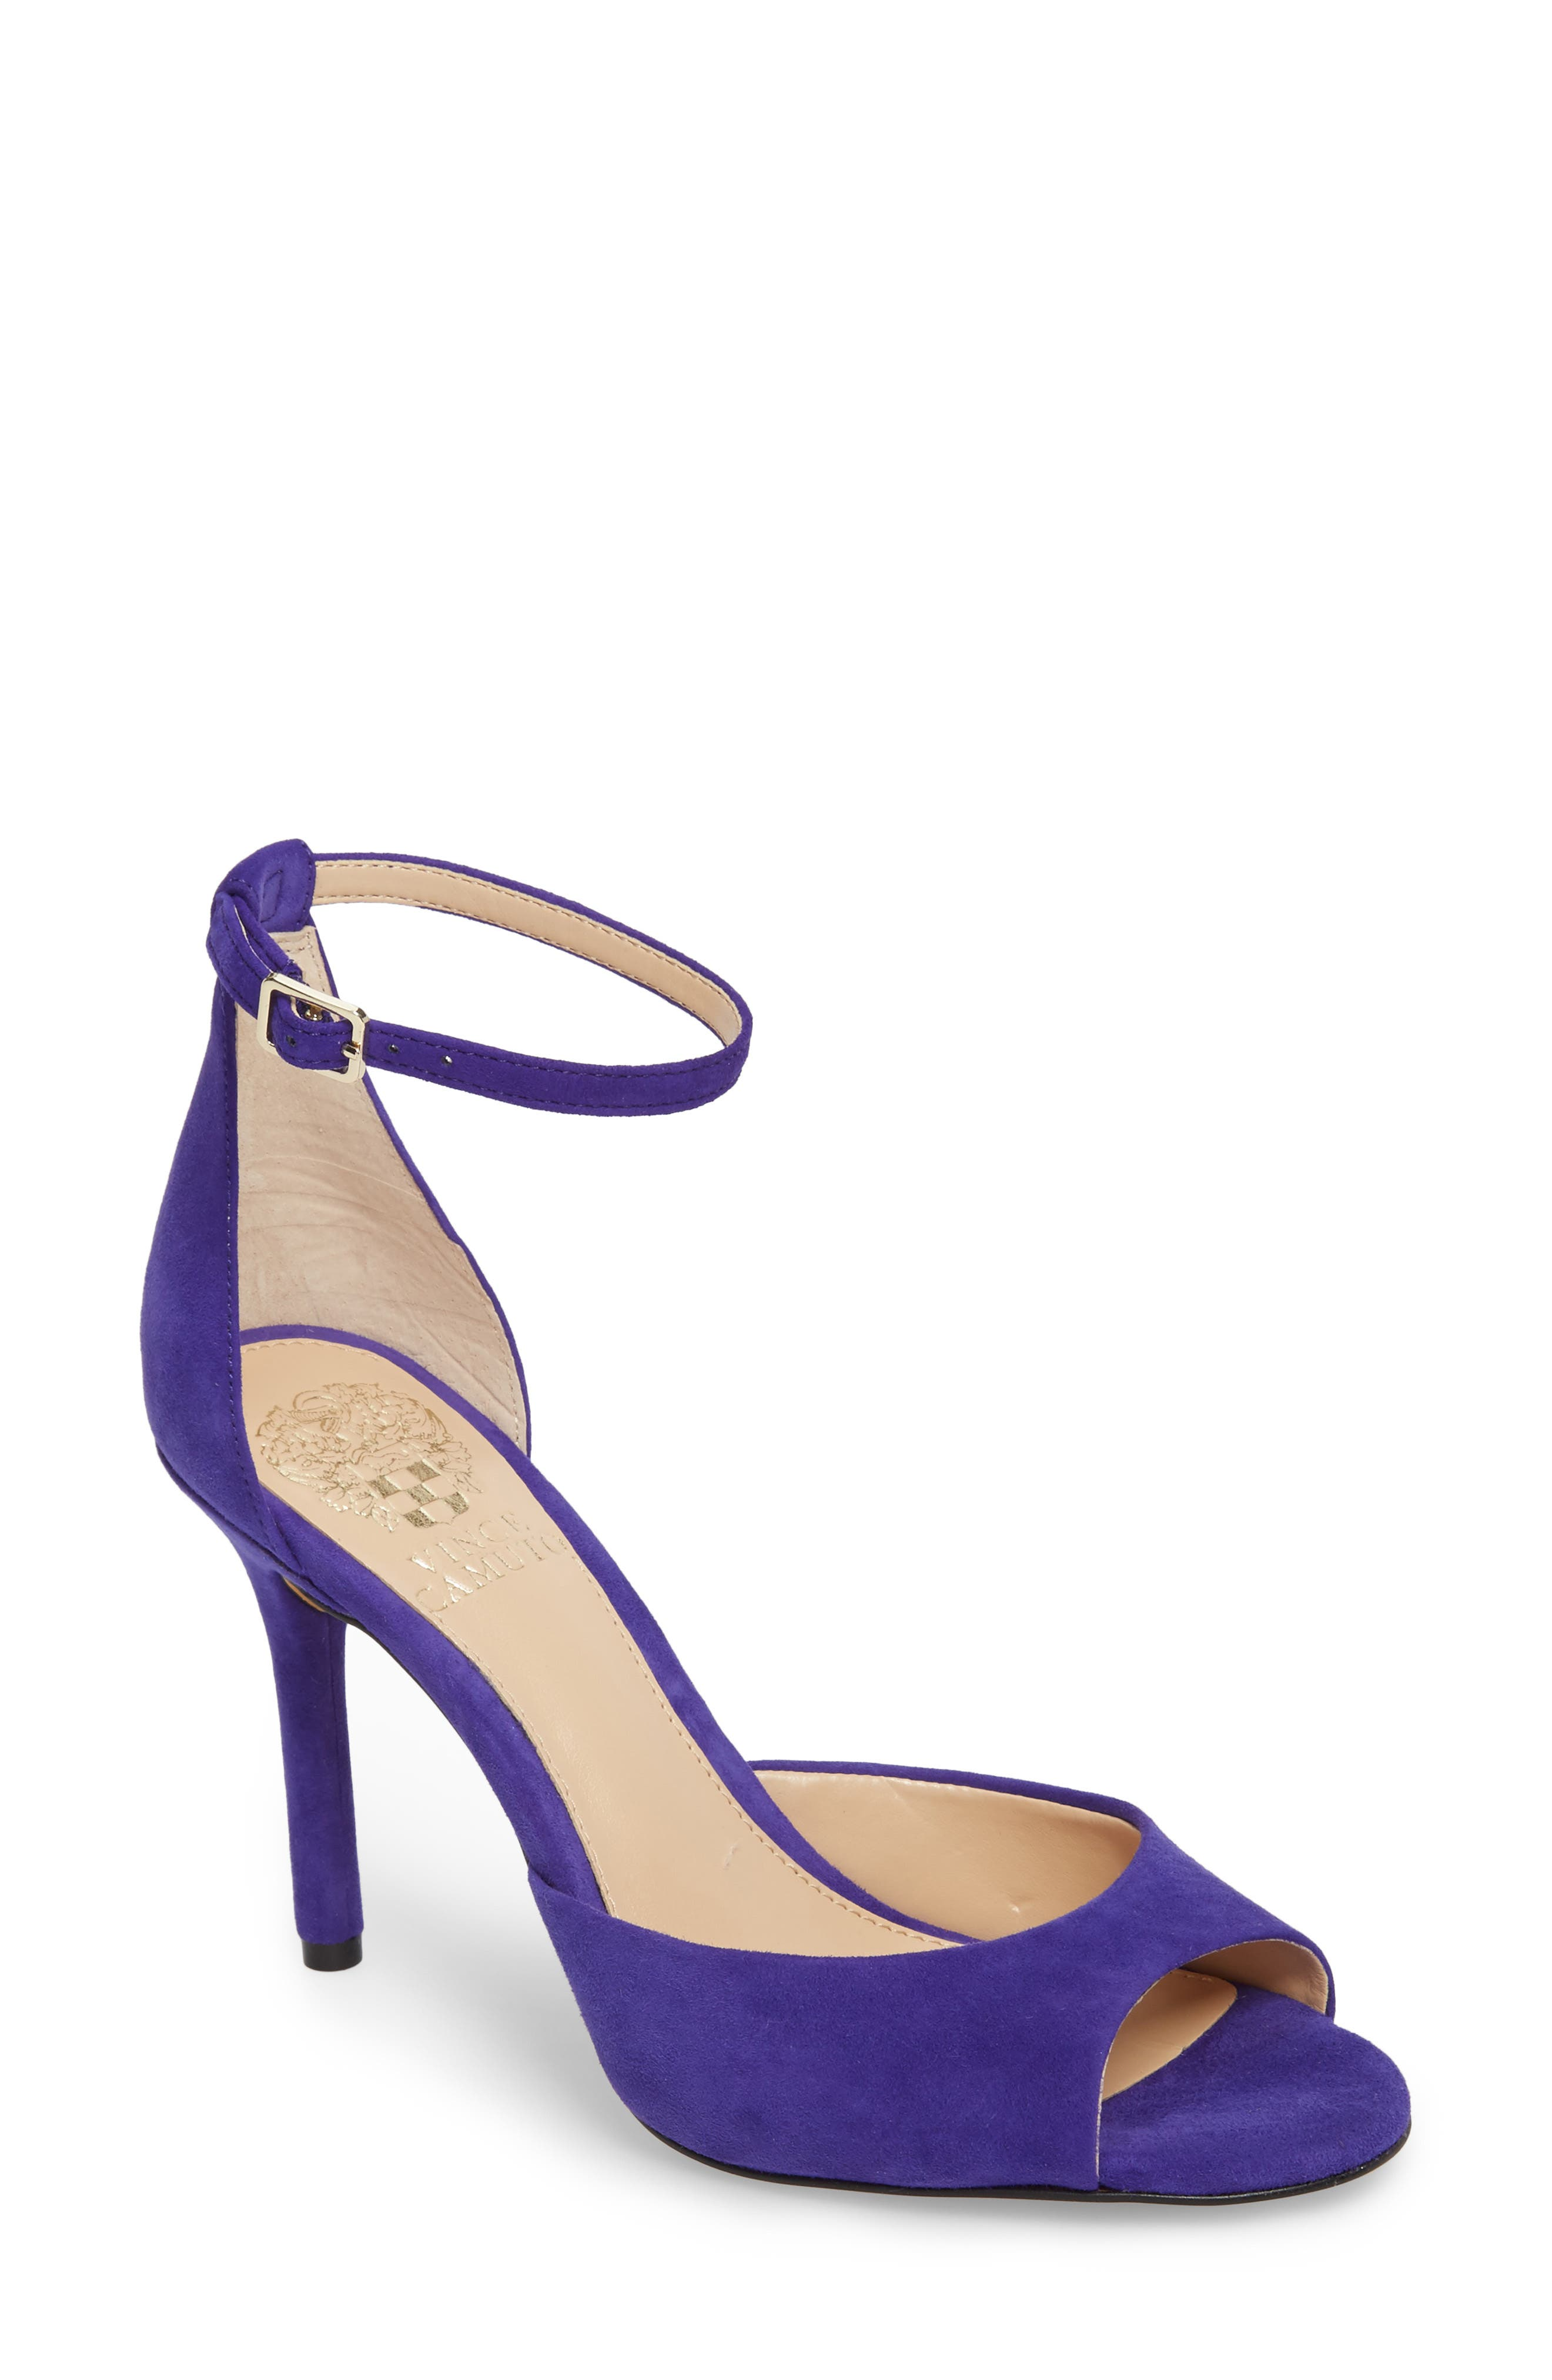 Alternate Image 1 Selected - Vince Camuto Calinas Sandal (Women) (Nordstrom Exclusive)